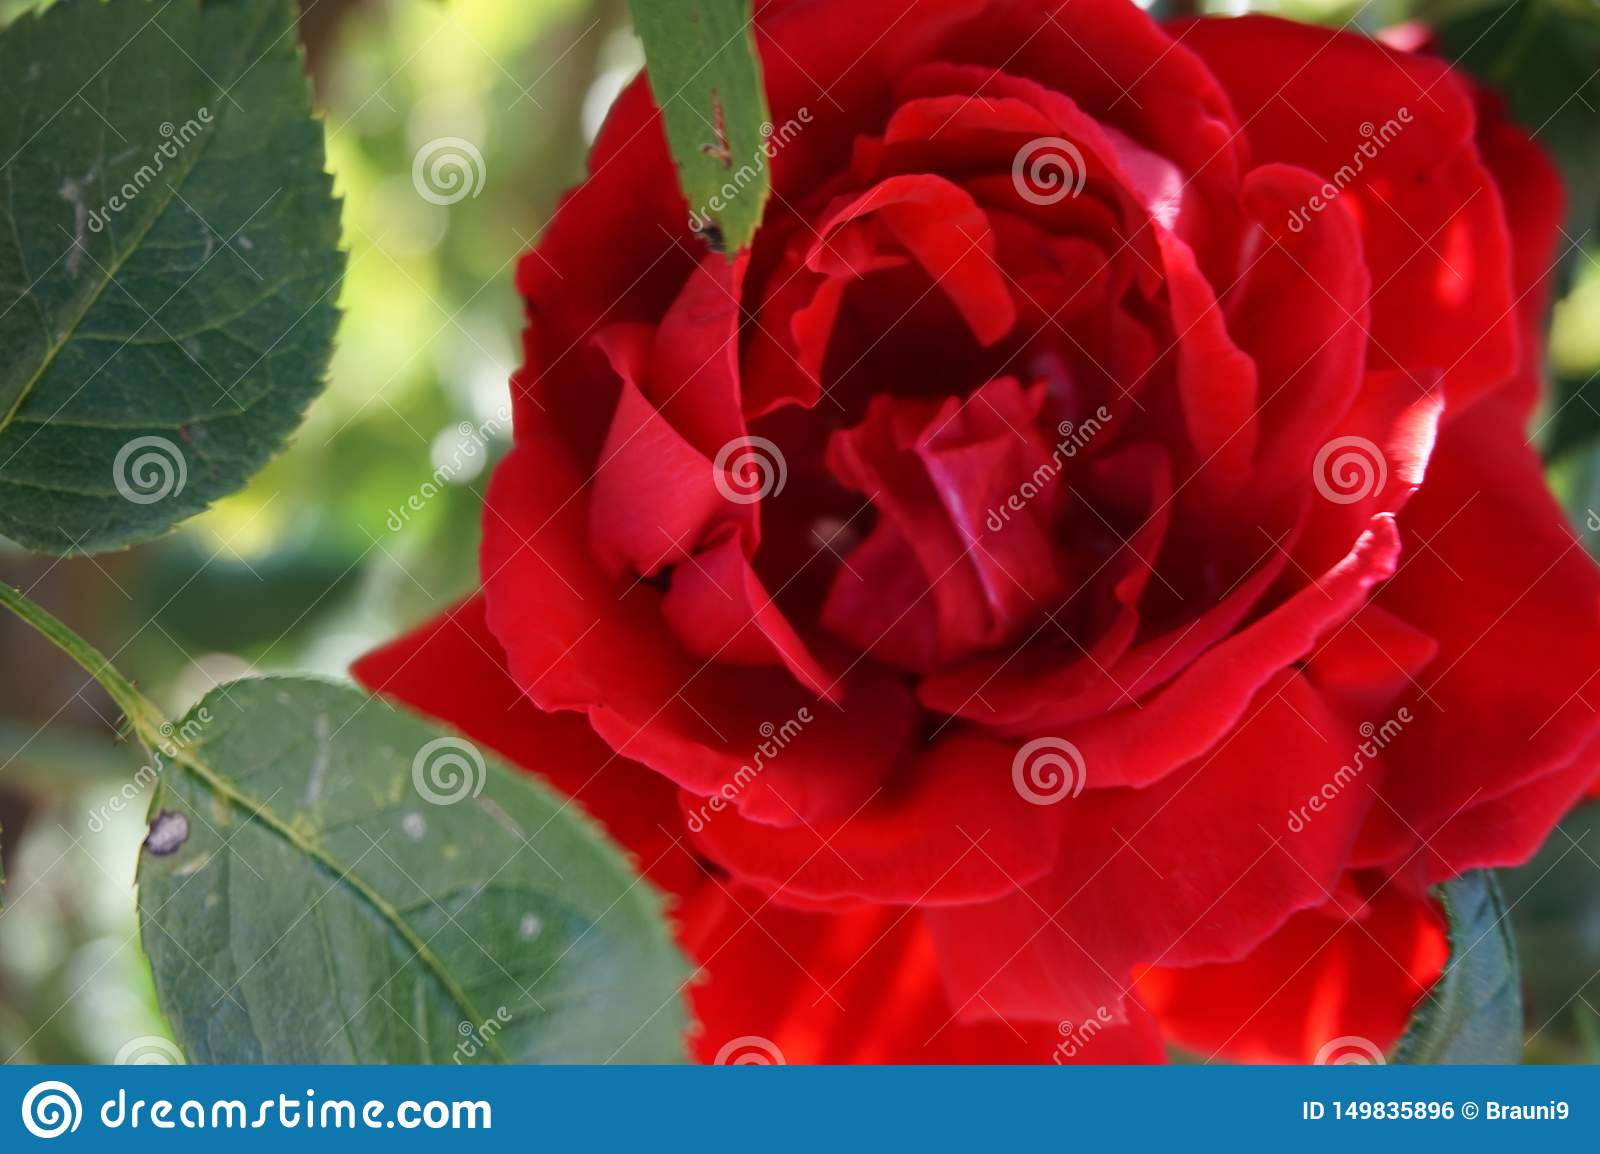 Beautiful red rose with leaves in close-up